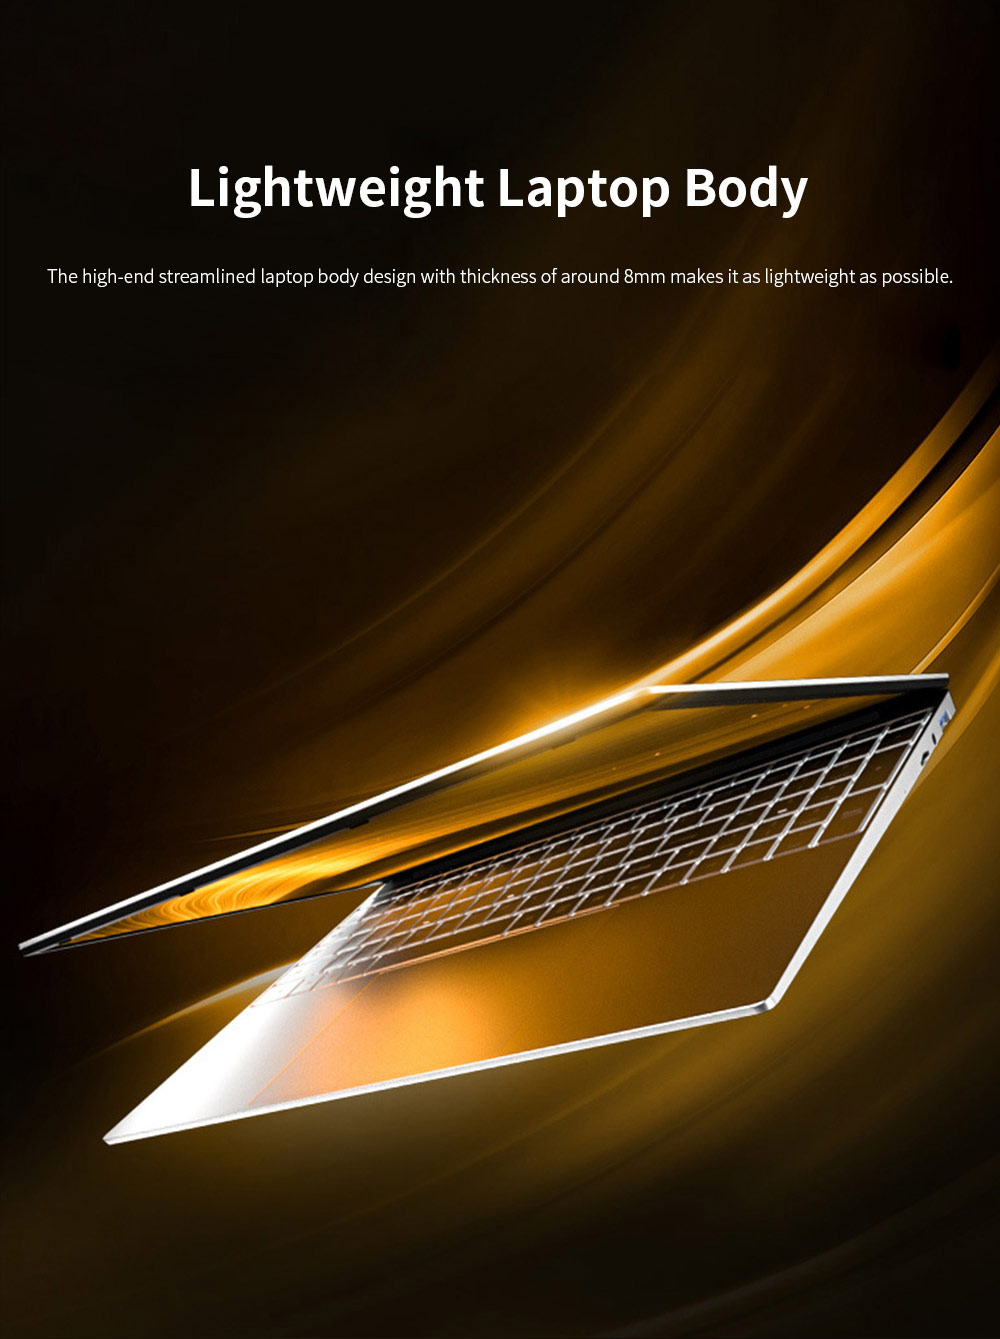 Ultrathin Portable 15.6 Inch I3 I5 I7 Laptop for Business Entertainment Brand New Core Processer Notebook Computer High-performed Laptop 4